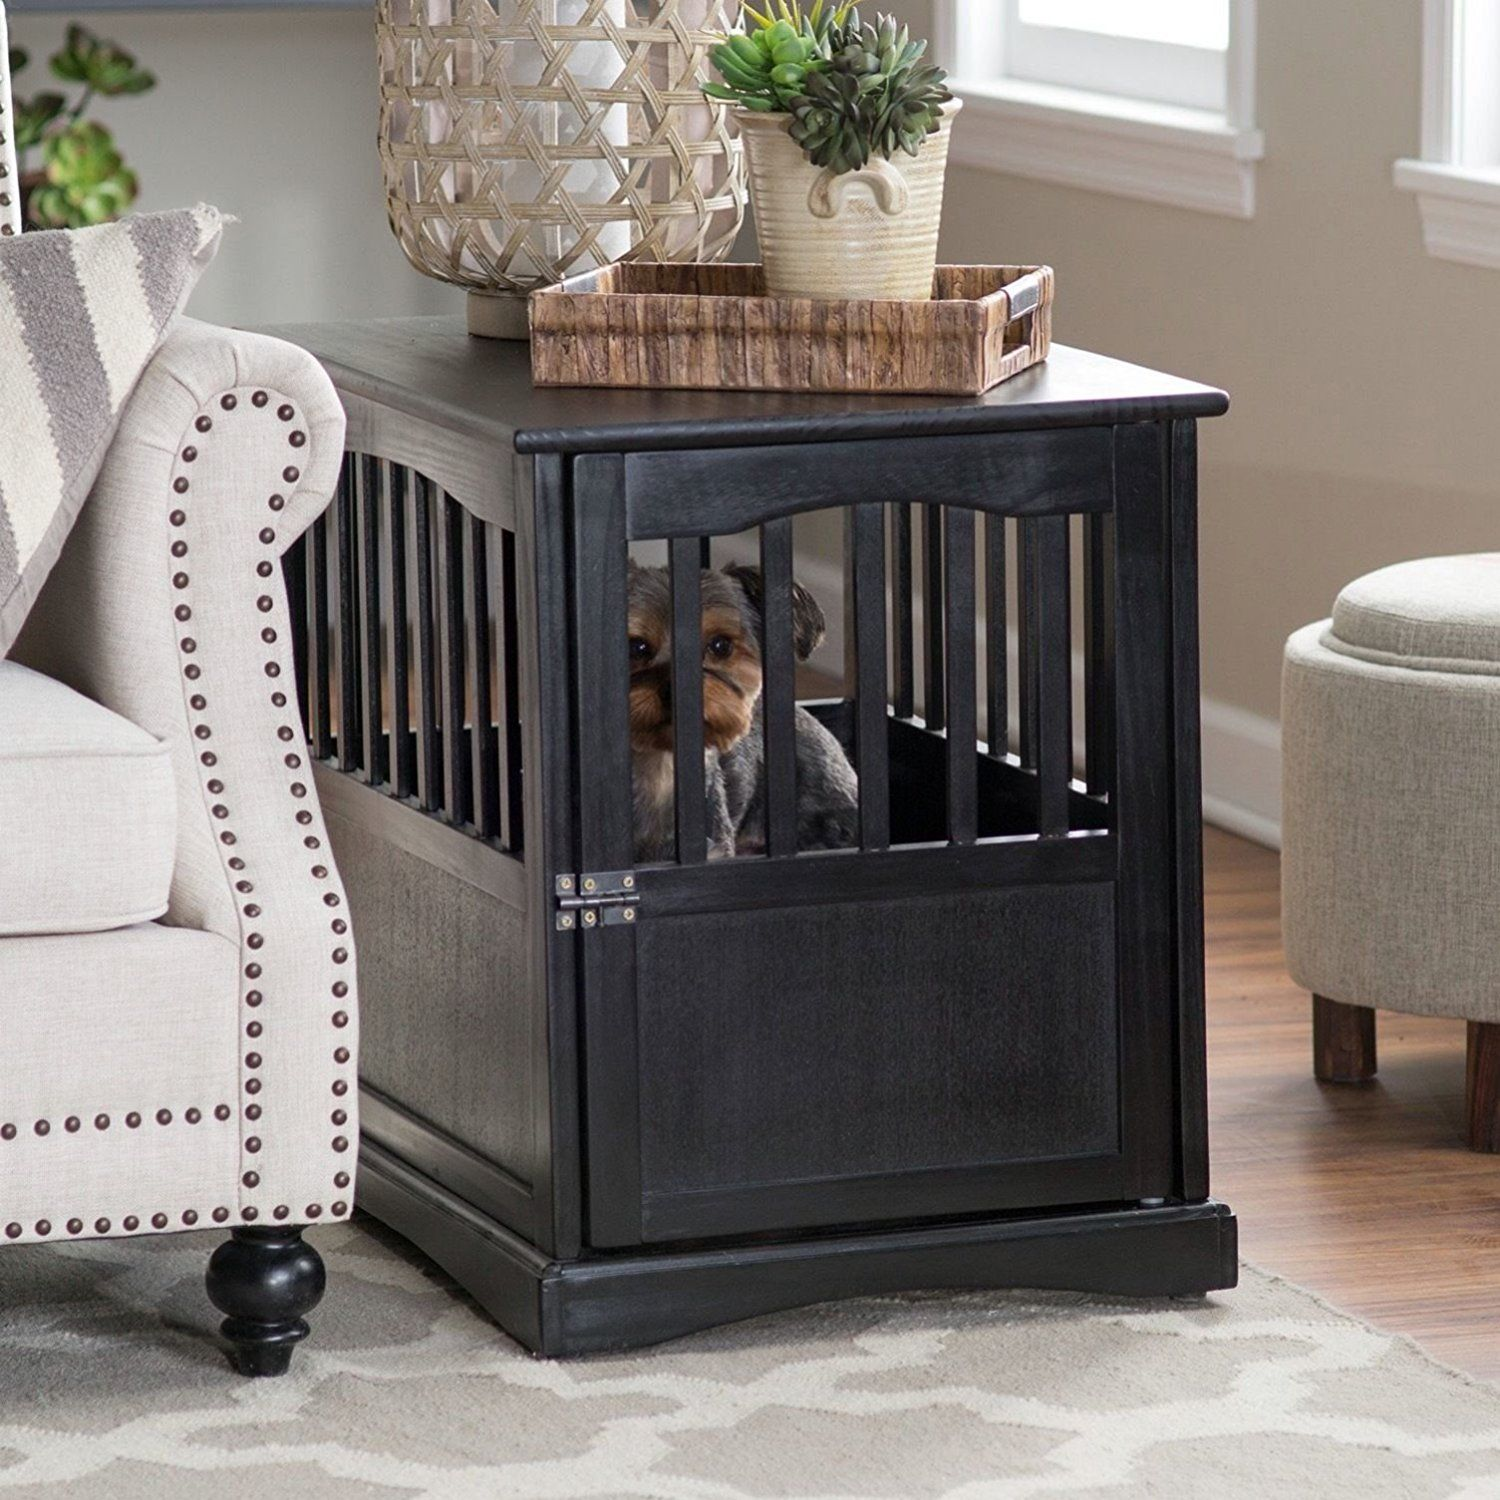 Wooden Dog Crates That Look Like Furniture   Luxury Crate End Tables